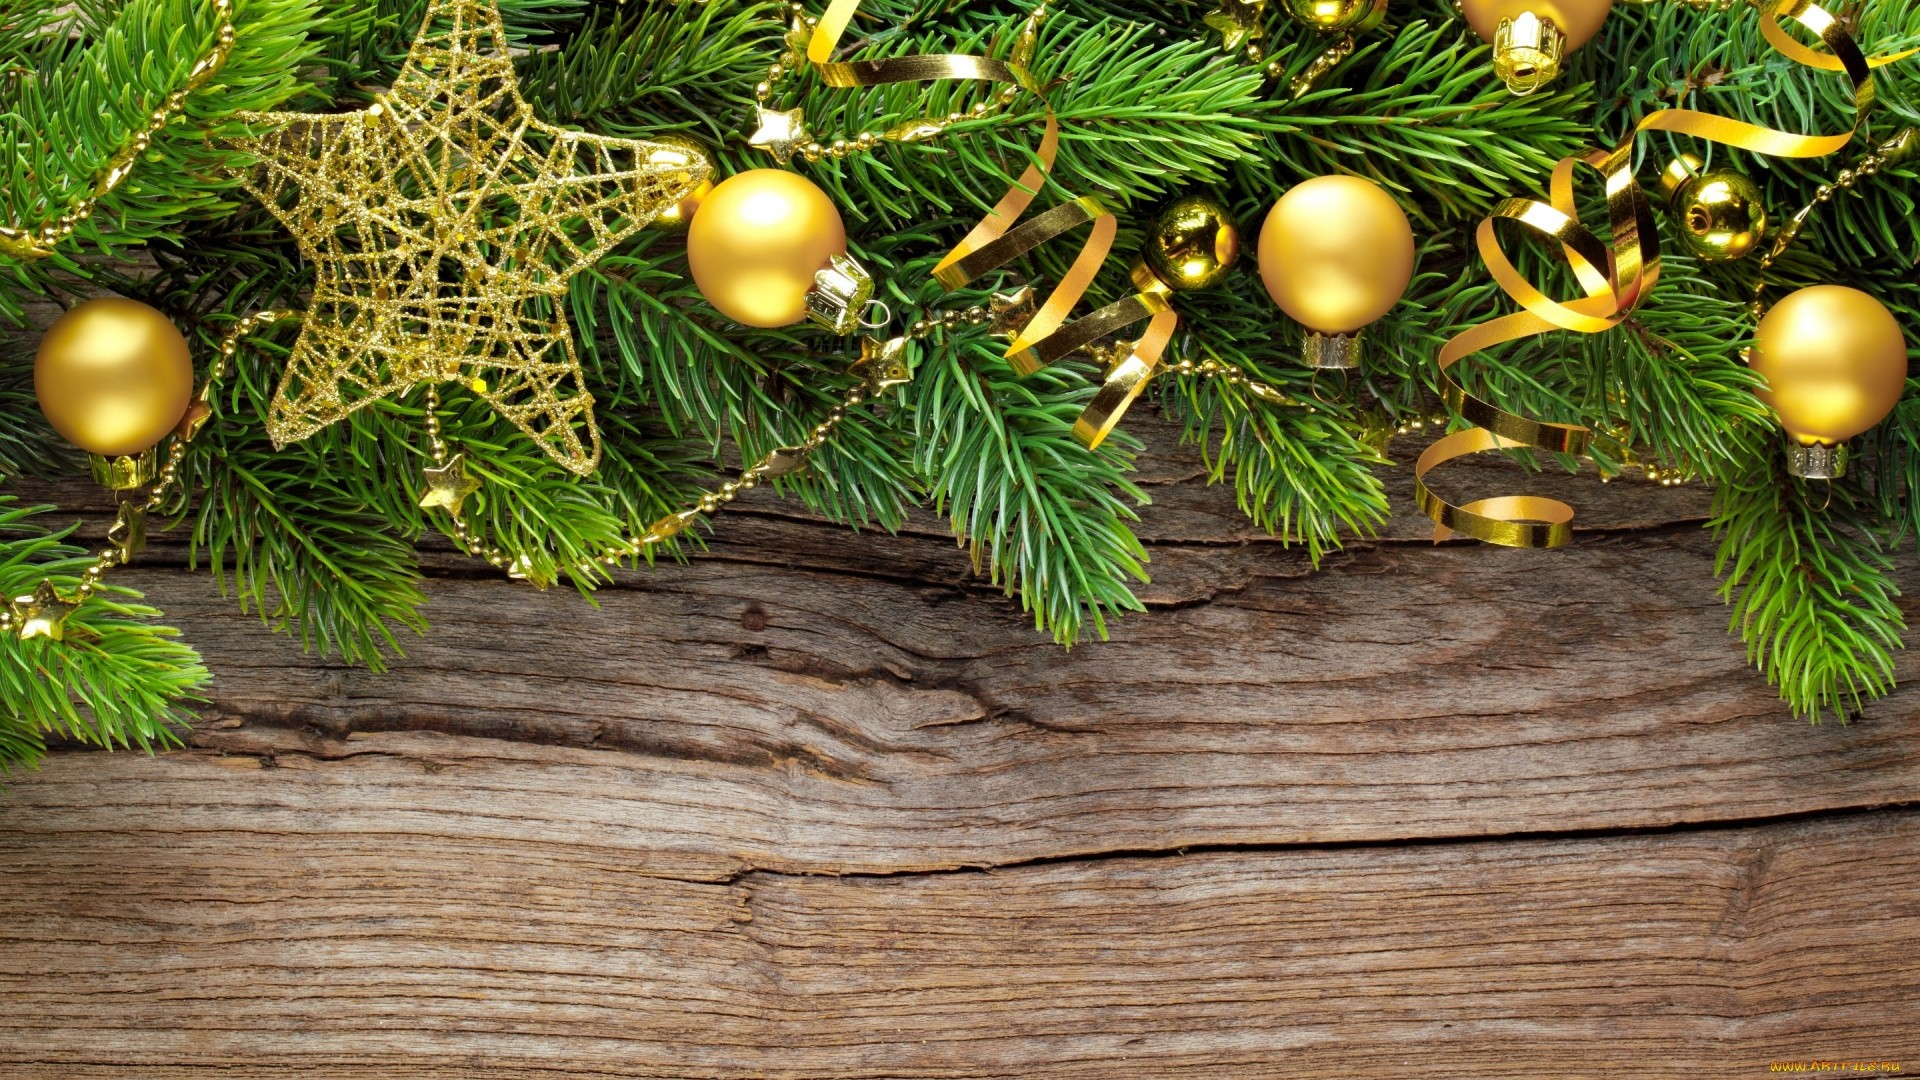 New Year Branches Wallpaper image hd